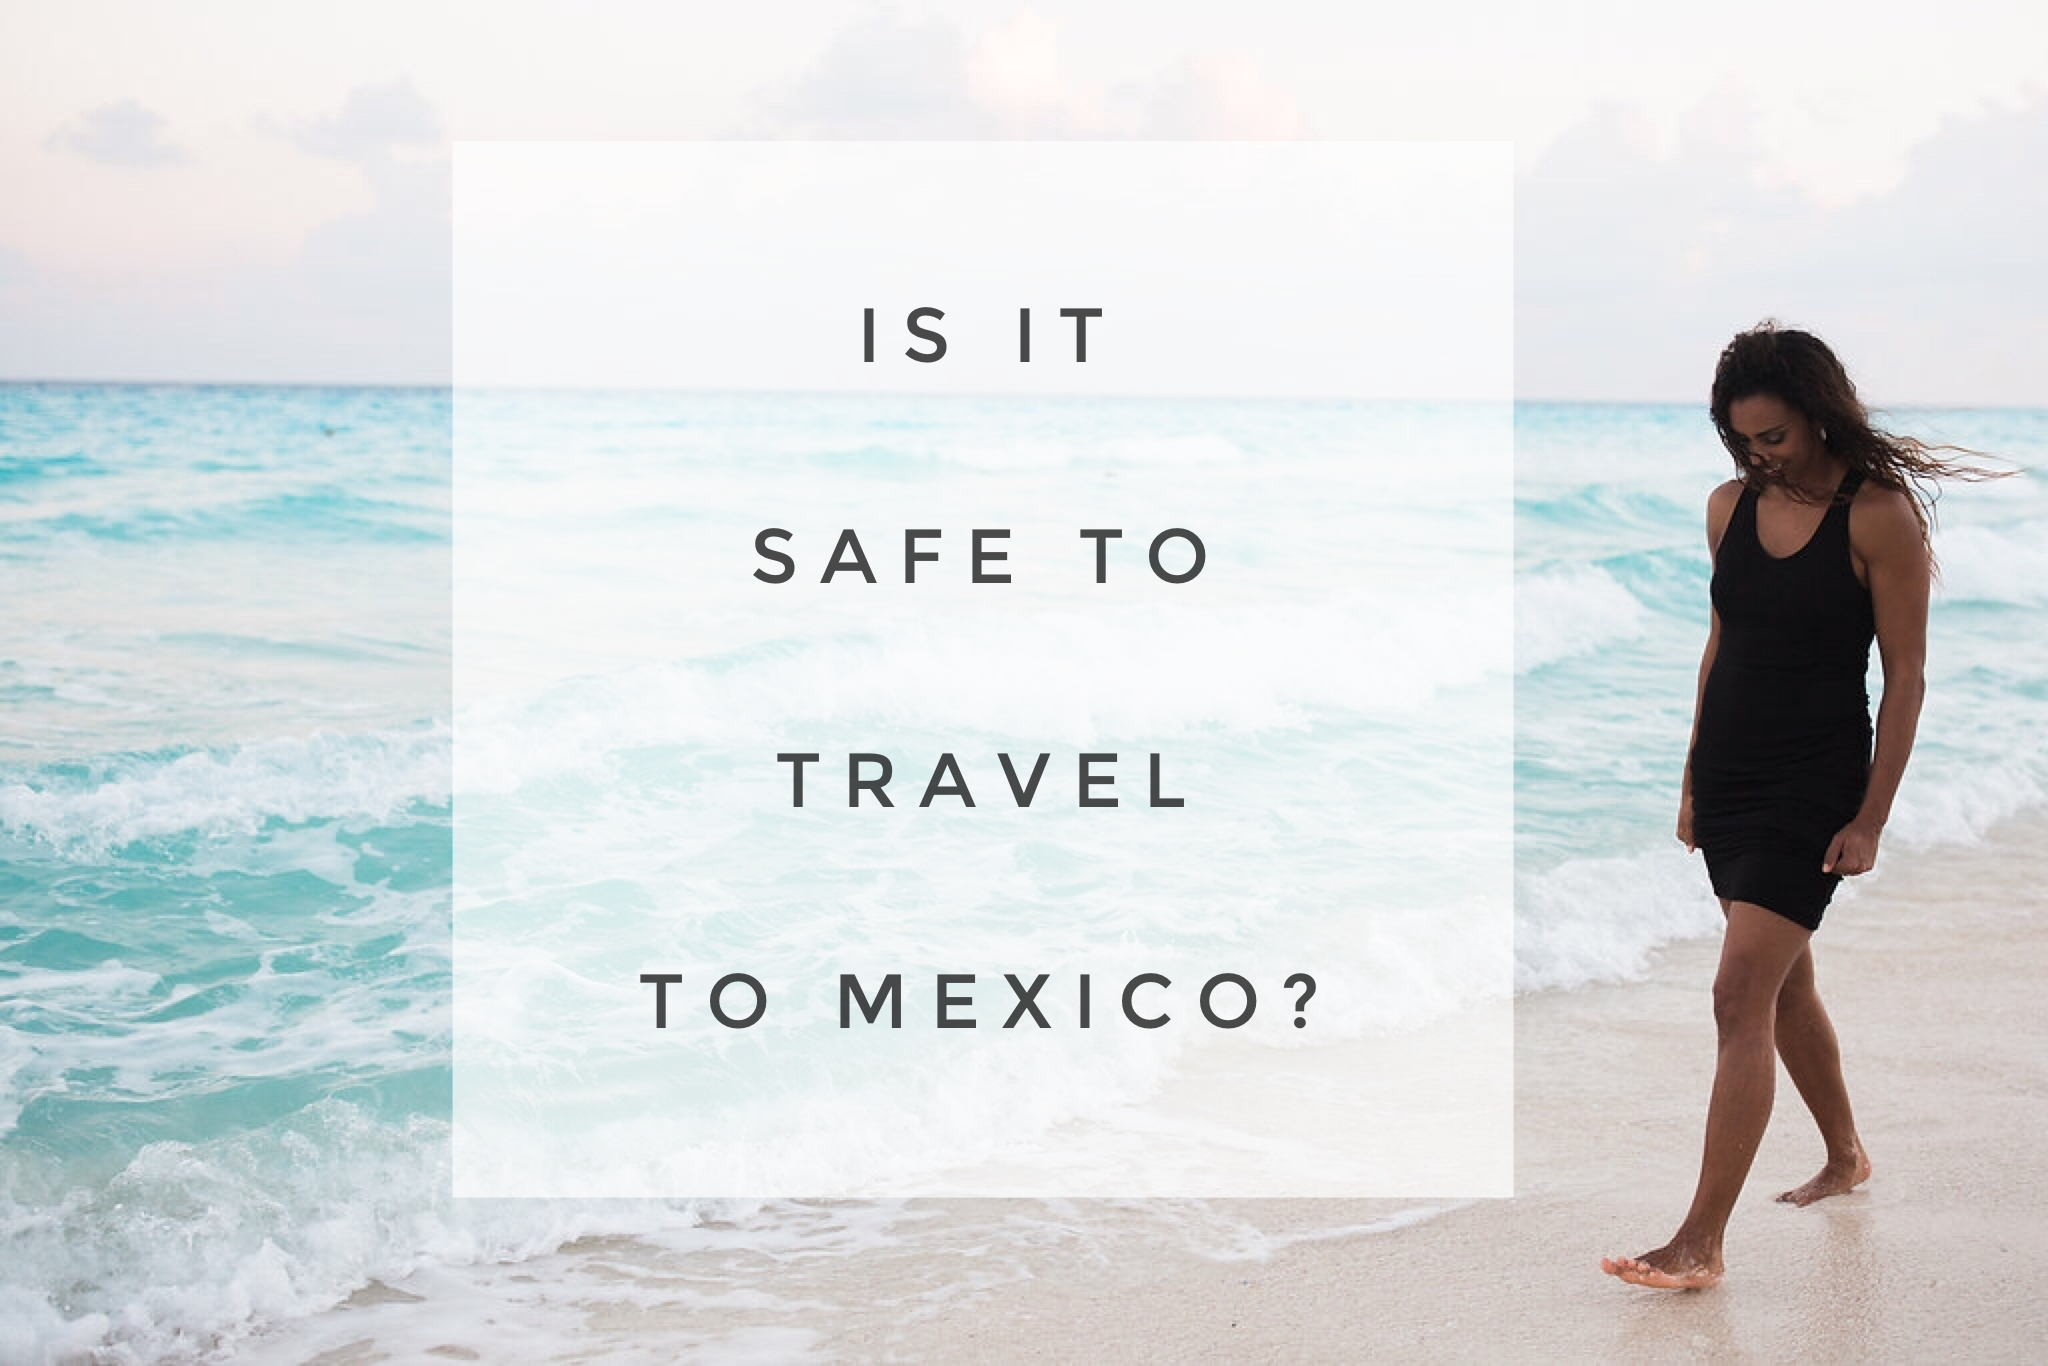 Is it safe to travel to Mexico